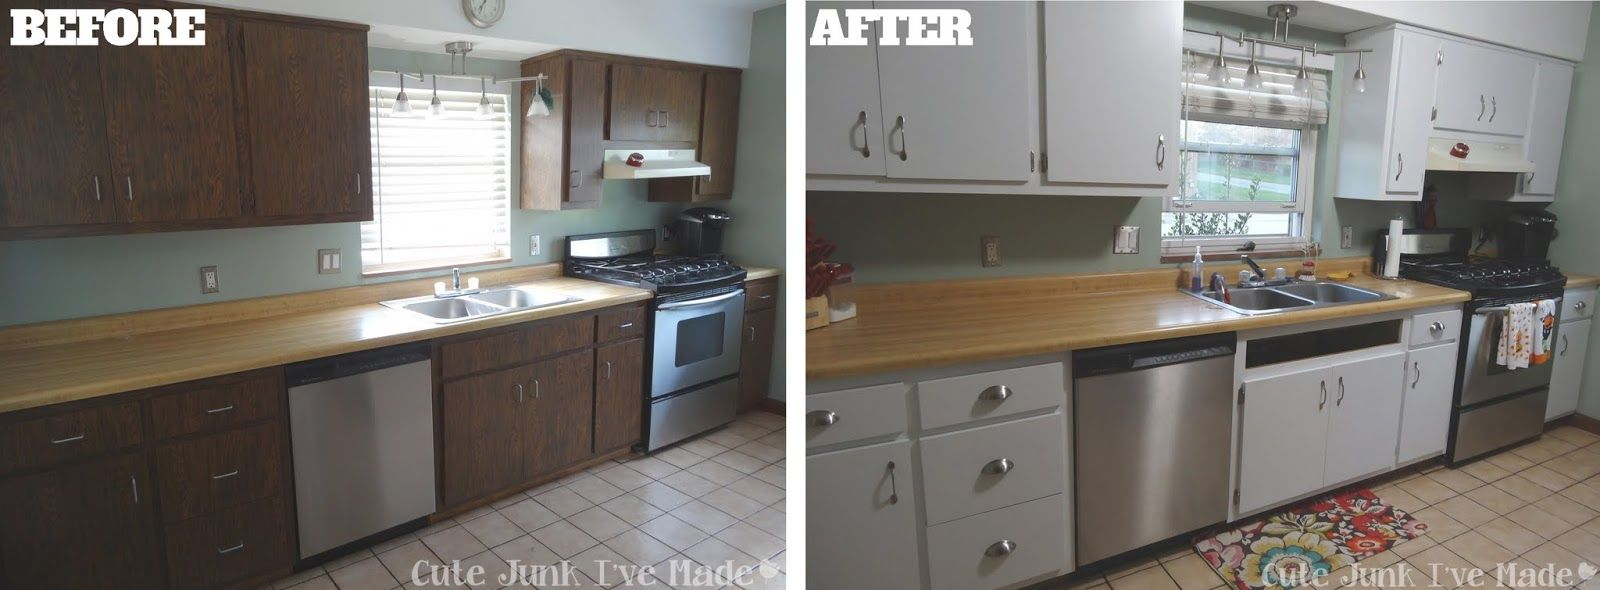 Uncategorized Can I Paint Over Laminate Kitchen Cabinets how to paint laminate cabinets before after use old kitchen in laundry